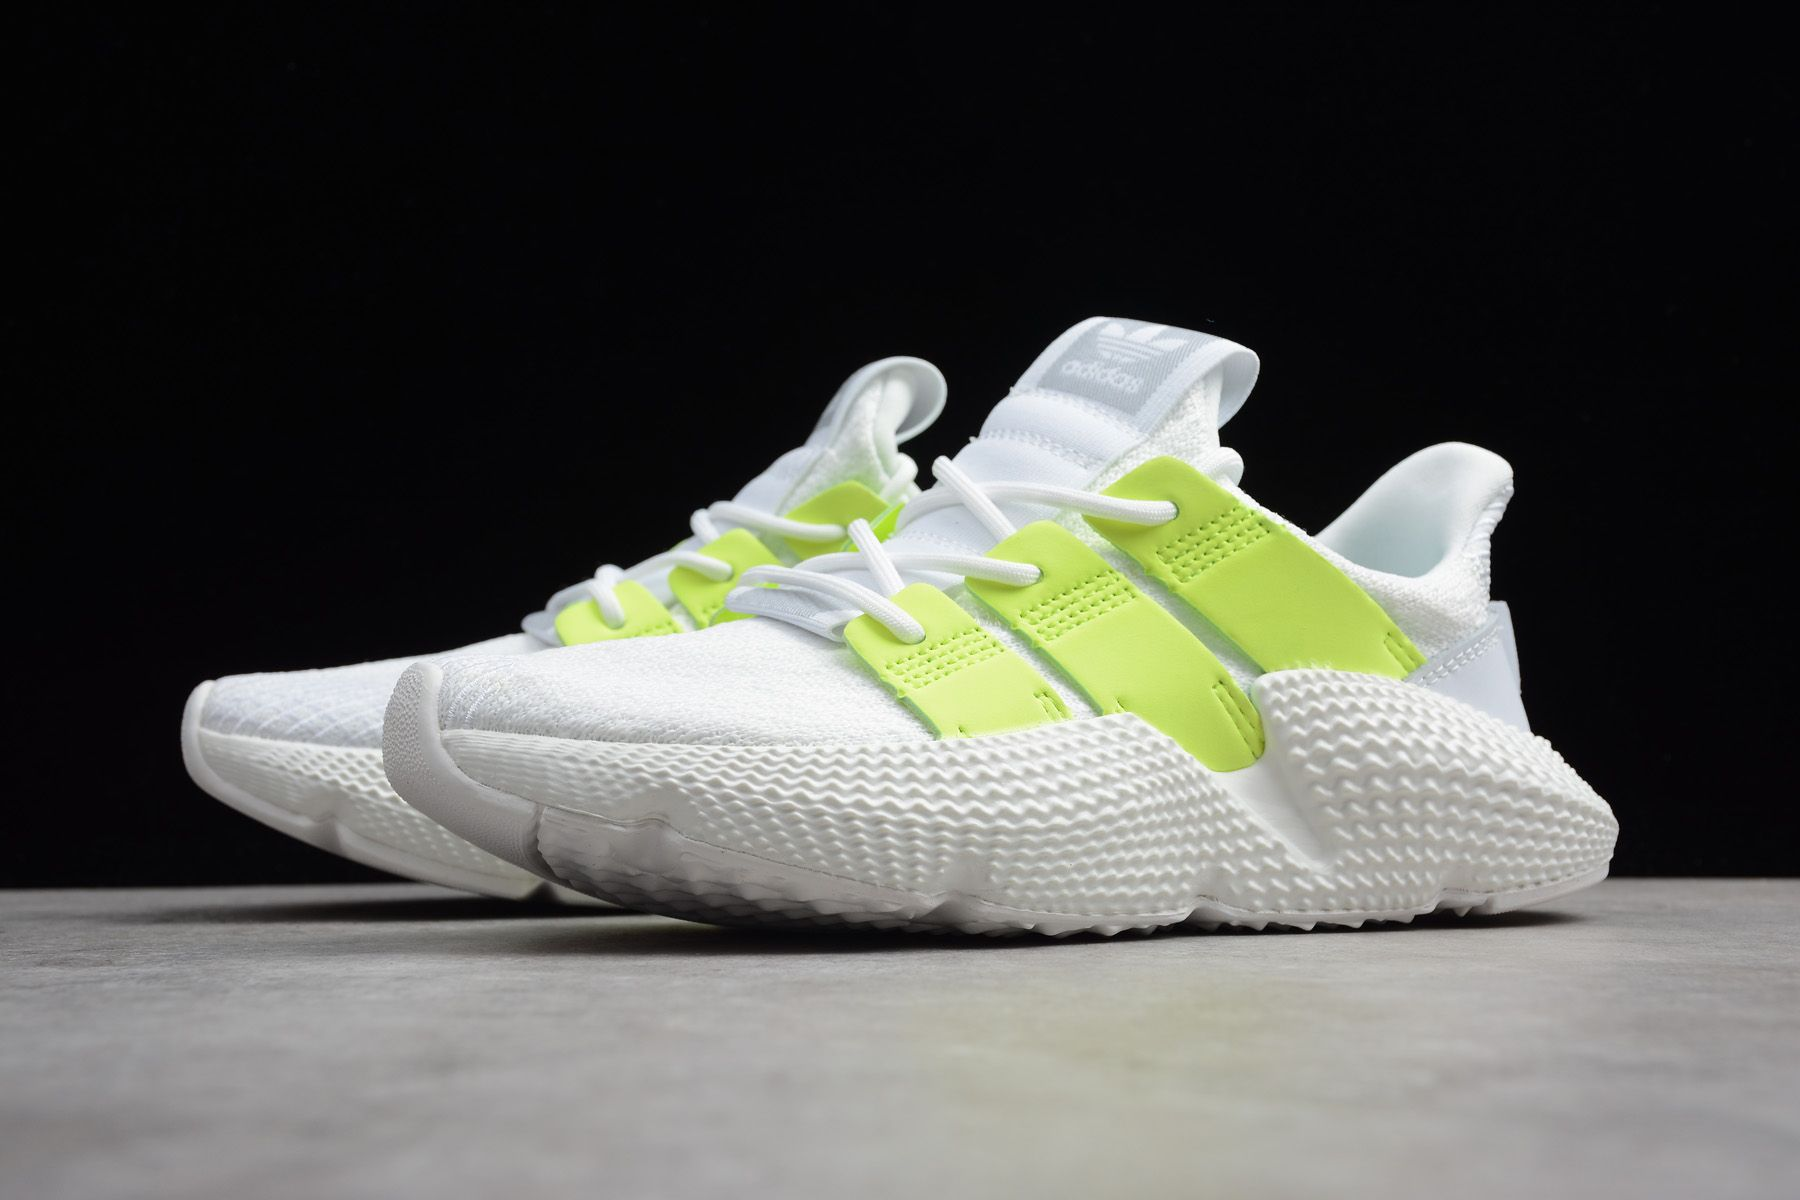 4c0125f8e93f31 Women s adidas Originals Prophere White Volt-Green B37659 in 2019 ...